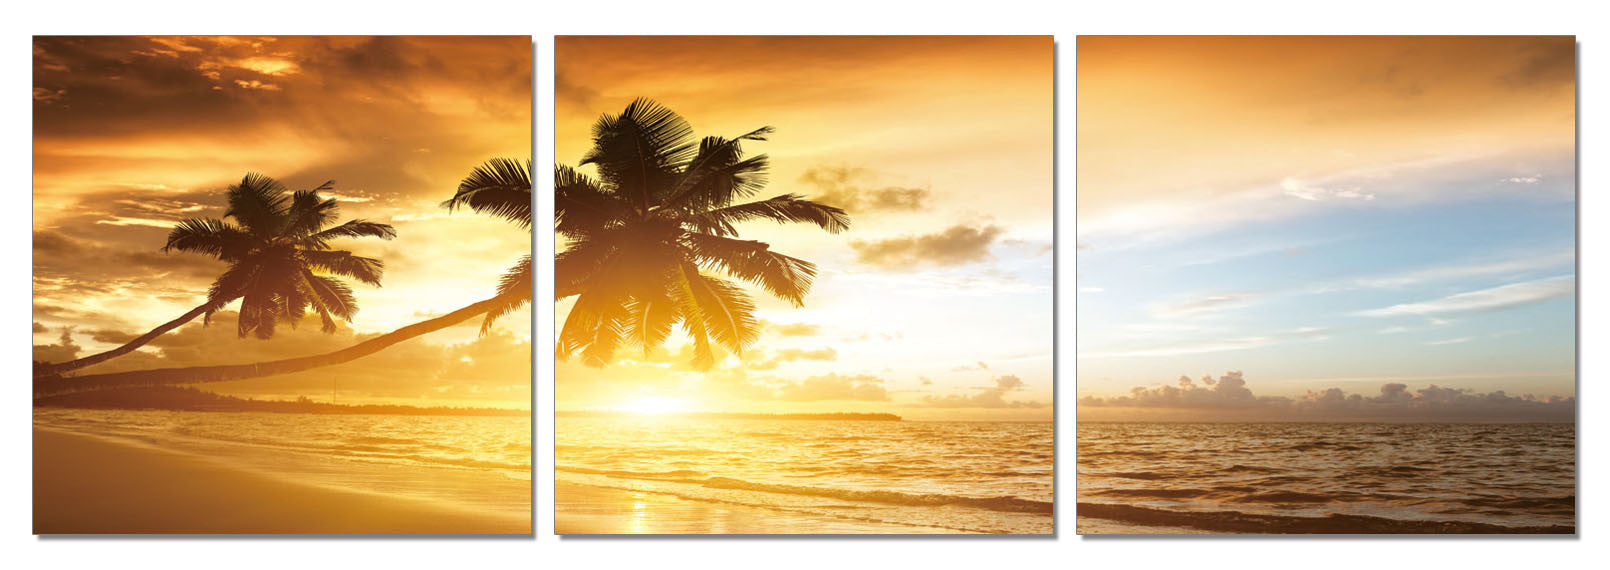 Beach and Ocean Scenes - California Wall Art